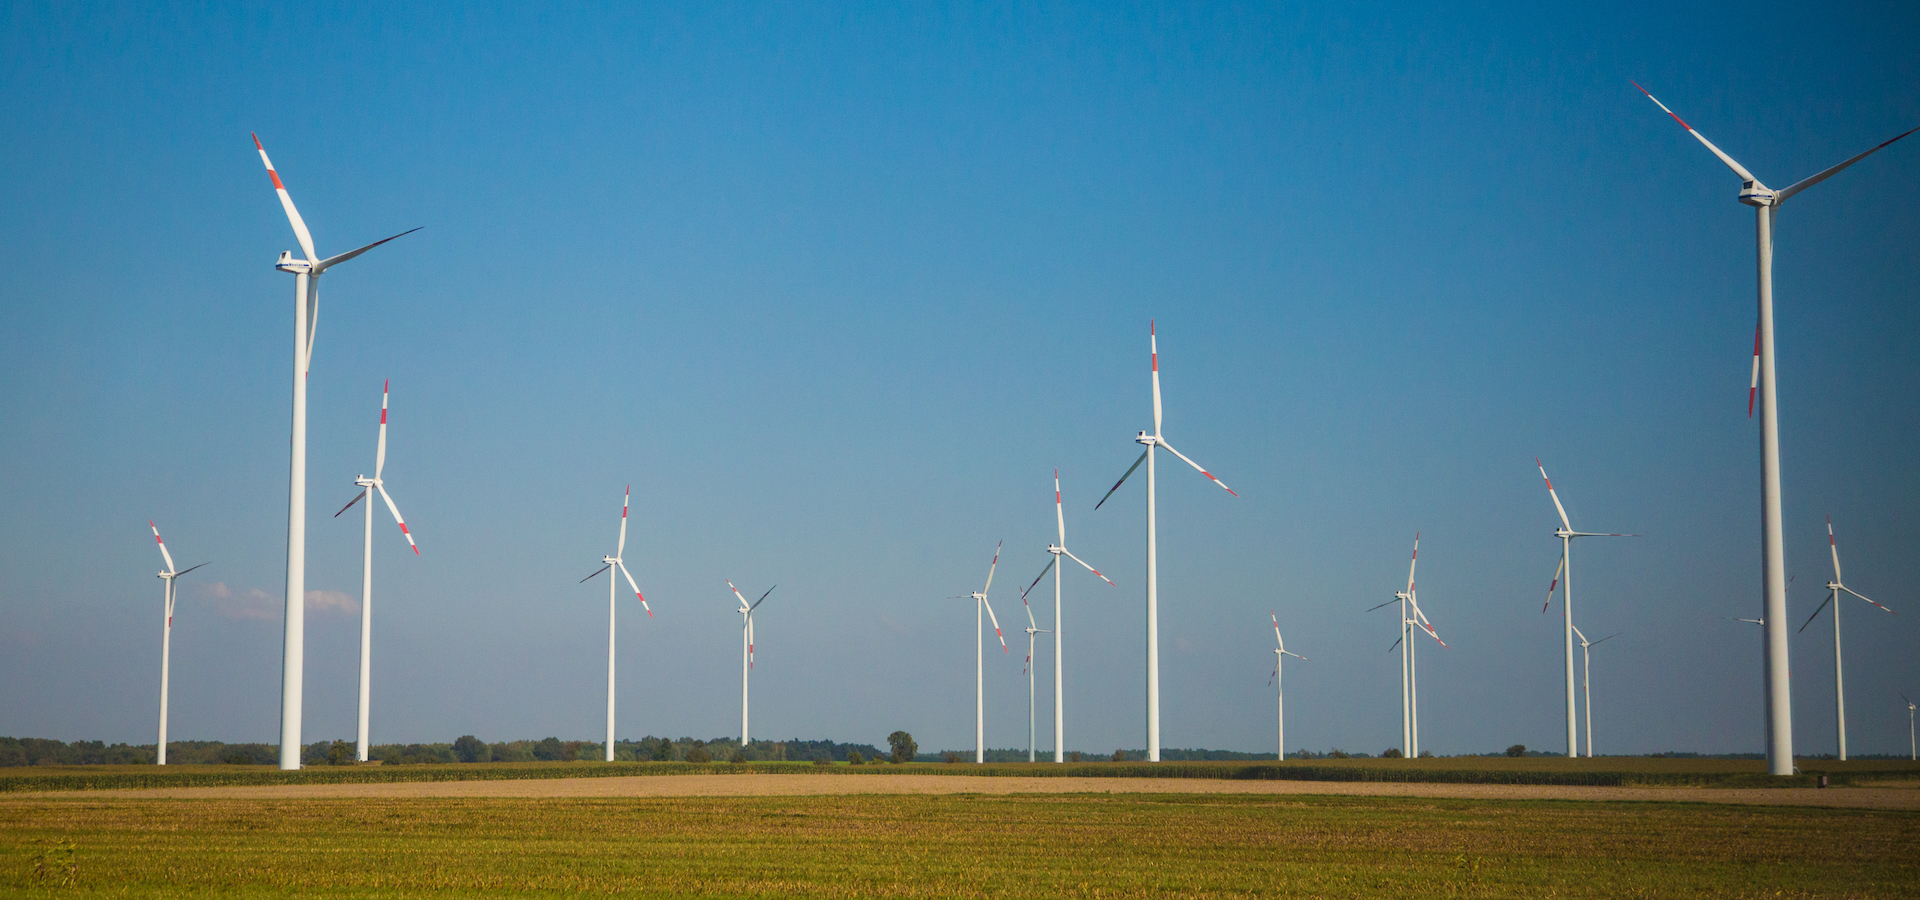 windmills in a flat field with blue sky